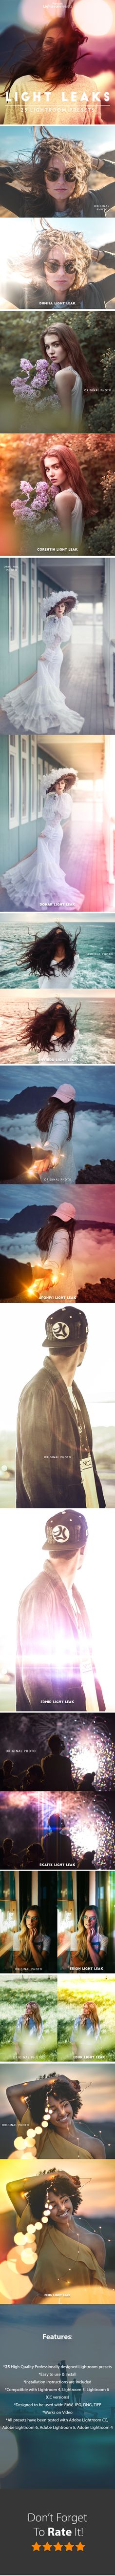 25 Light Leaks Lightroom Presets For #Lightroom 4,5,6,CC - Lightroom #Presets Add-ons